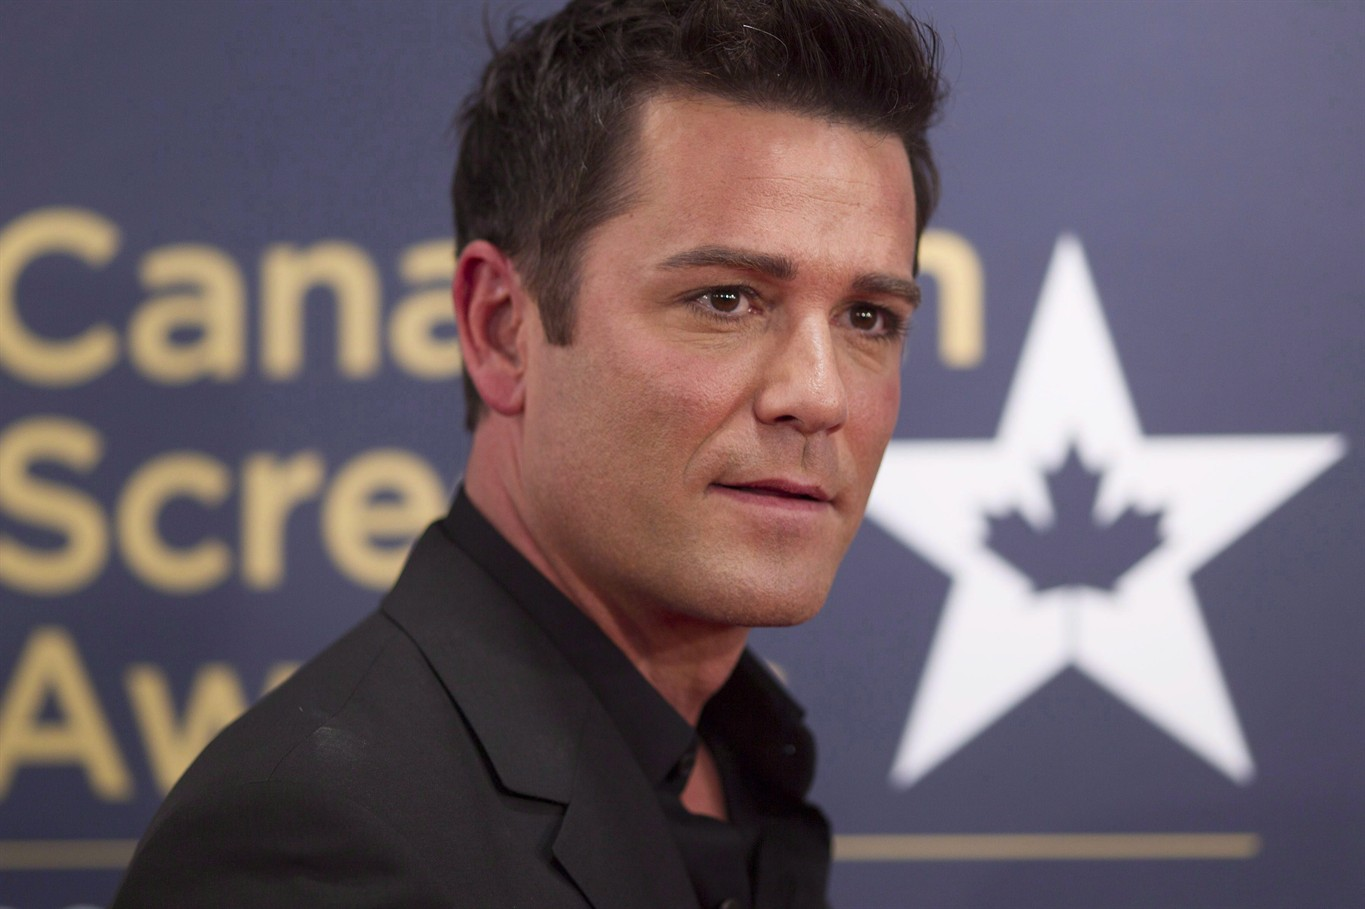 yannick bisson and his family